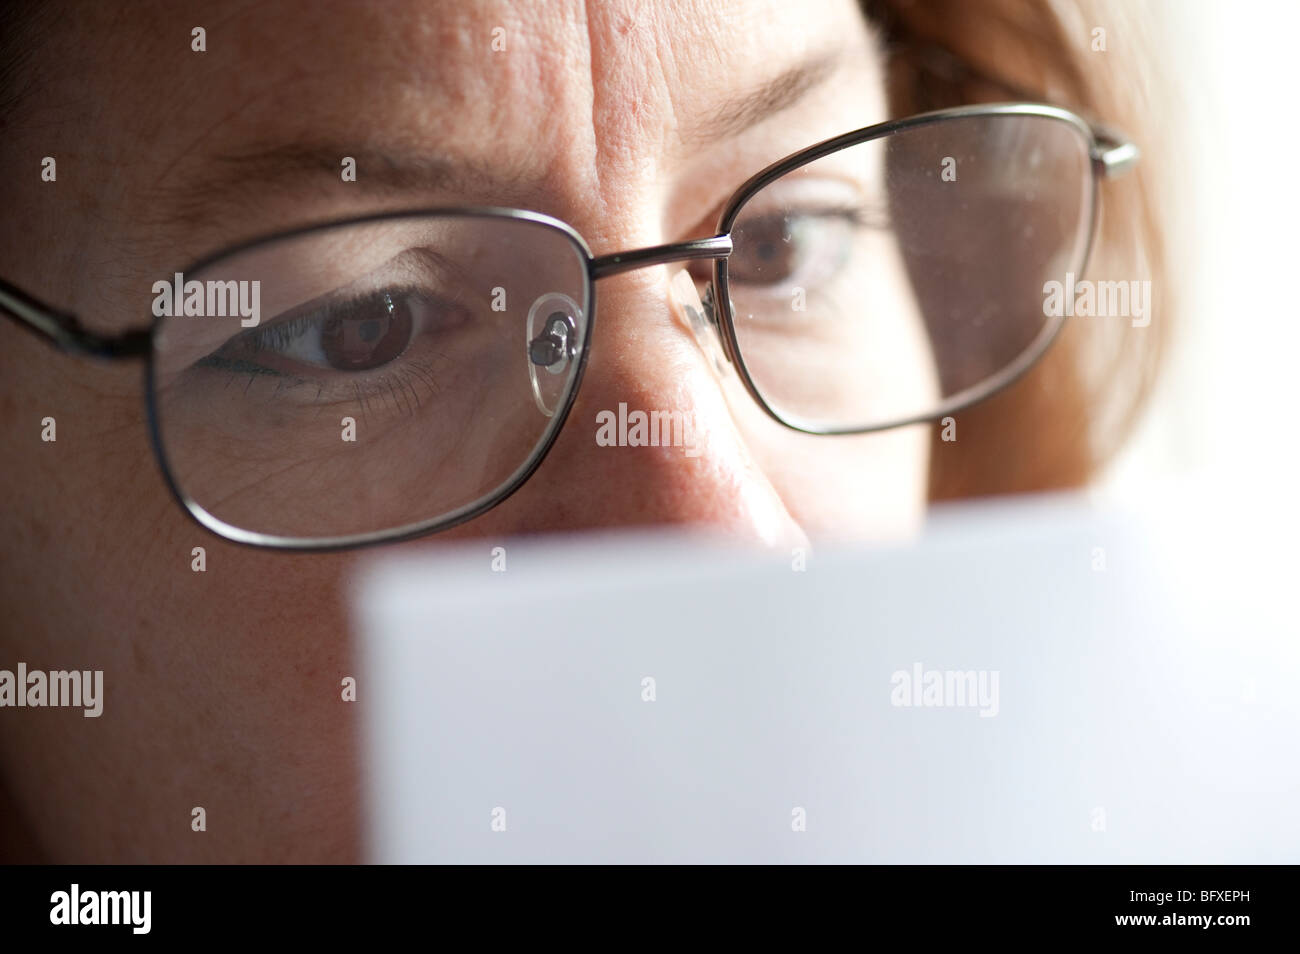 woman executive examining business document - Stock Image